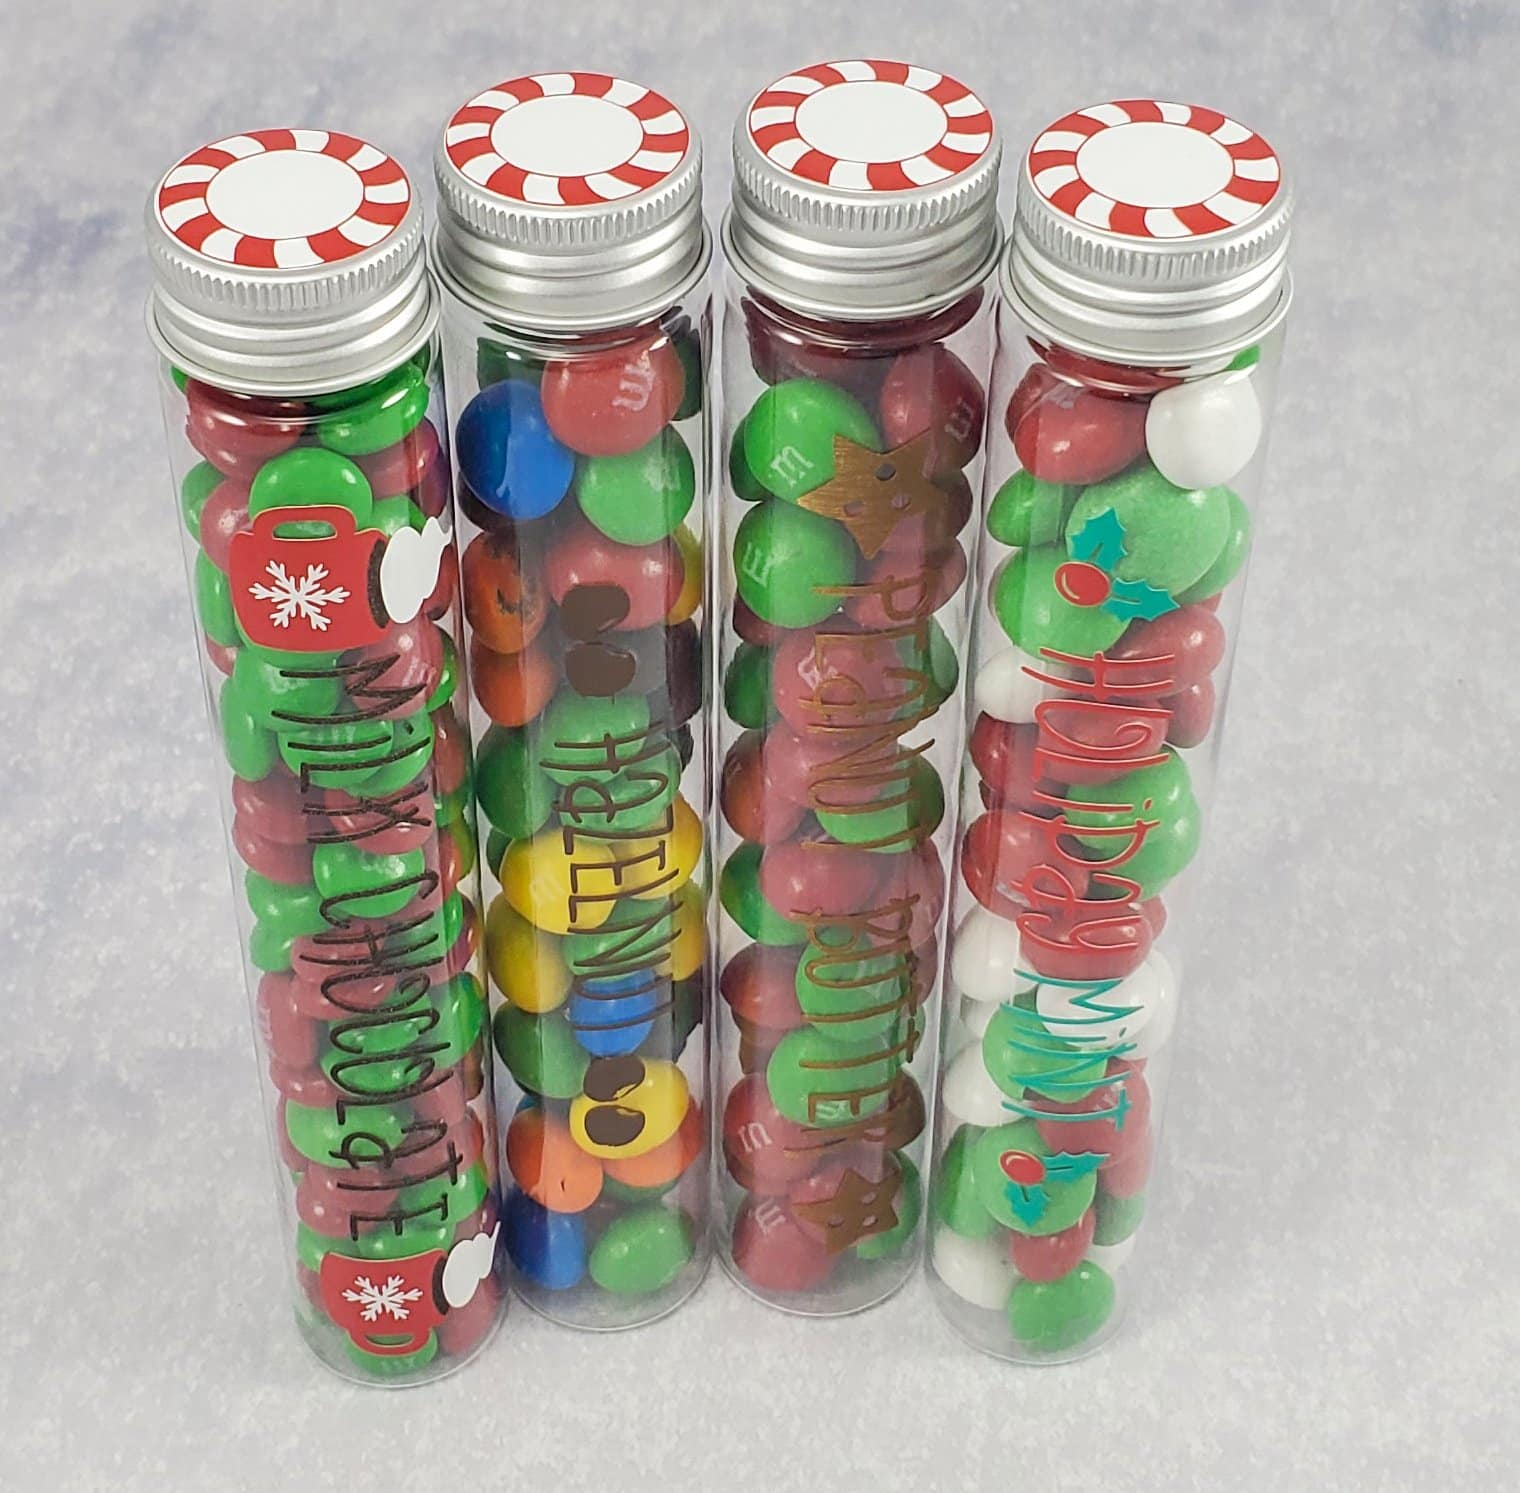 Four candy container tubes filled with candy